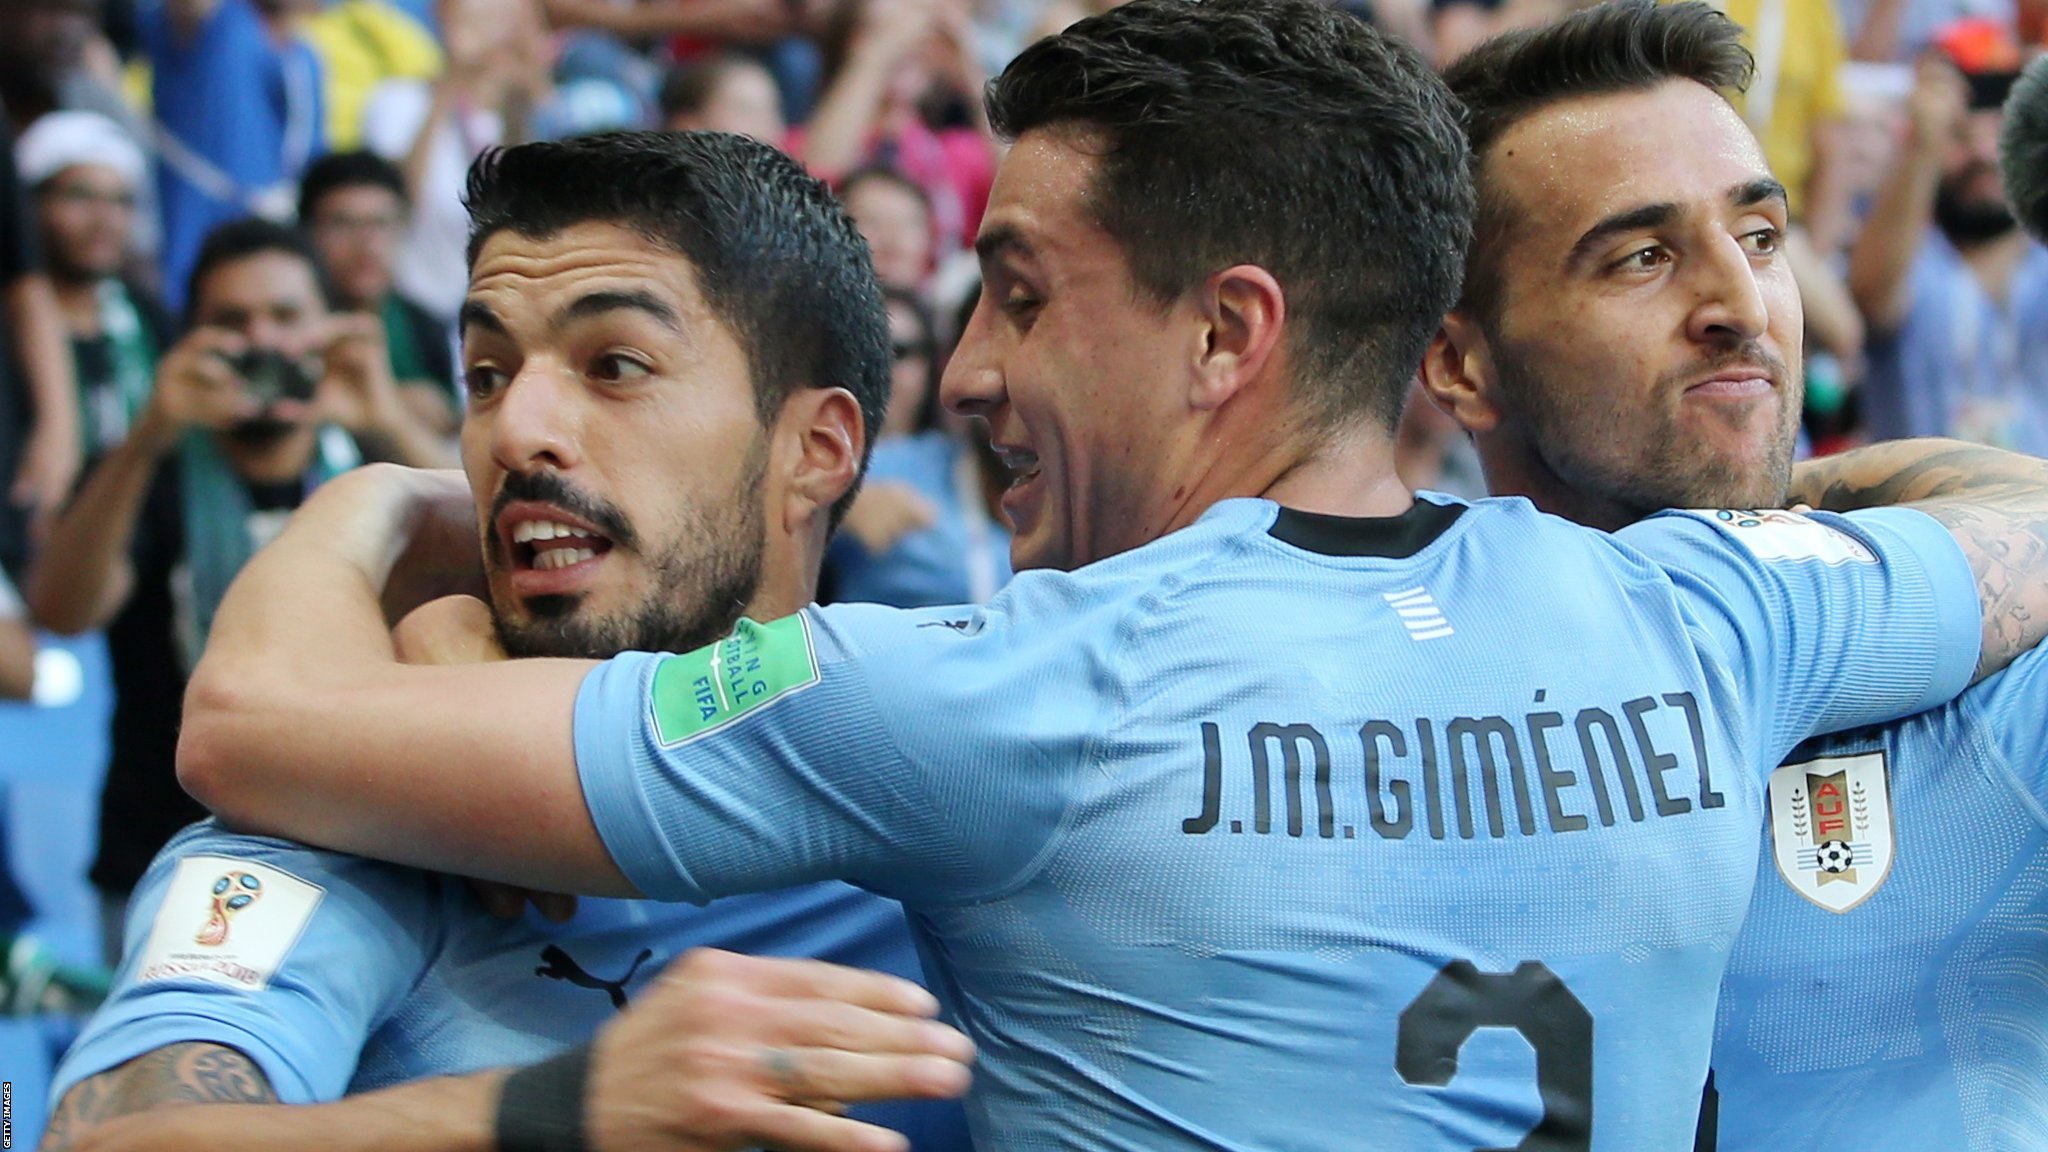 Uruguay beat Saudi Arabia to send themselves & Russia into last 16 - highlights & report